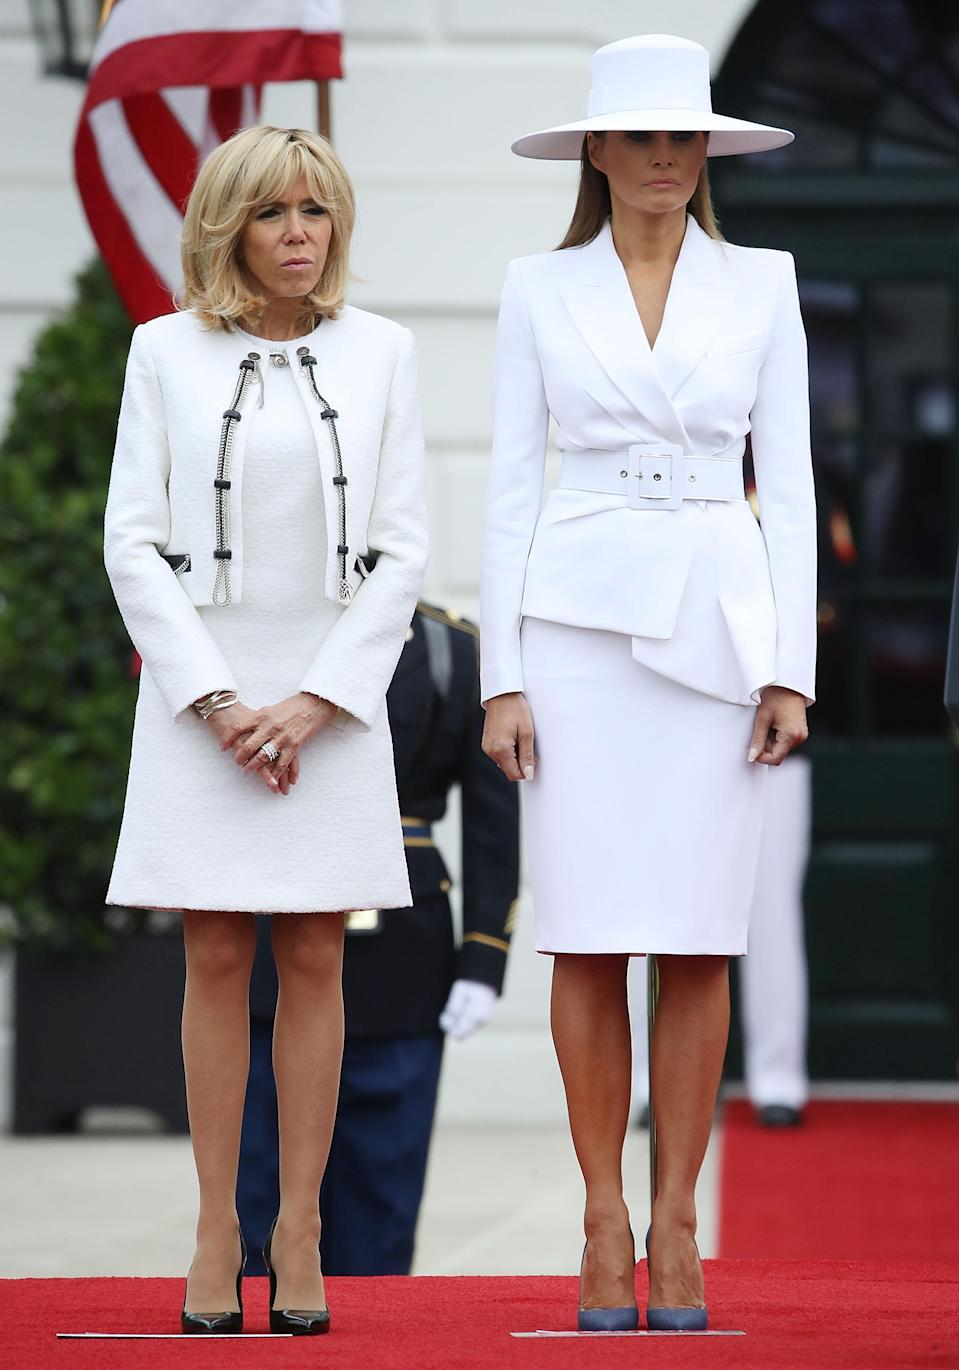 On the second day of the official state visit, Melania Trump graced the headlines with a talking point of an outfit. To colour co-ordinate with her Michael Kors skirt suit, she accessorised with a supersized hat by Hervé Pierre. [Photo: Getty]